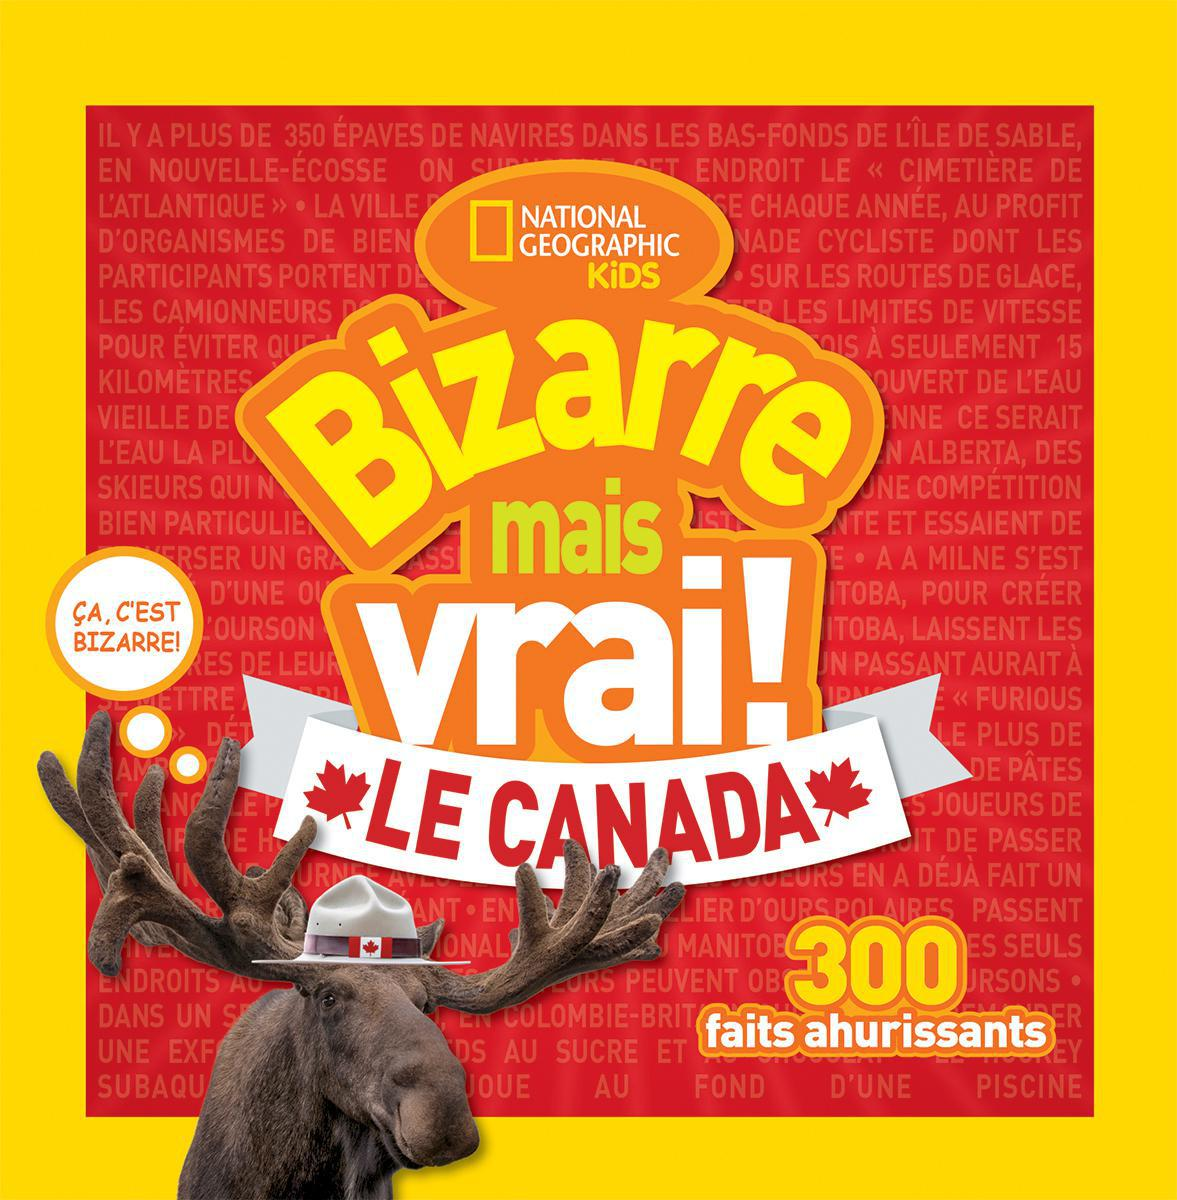 National Geographic Kids : Bizarre mais vrai! Le Canada